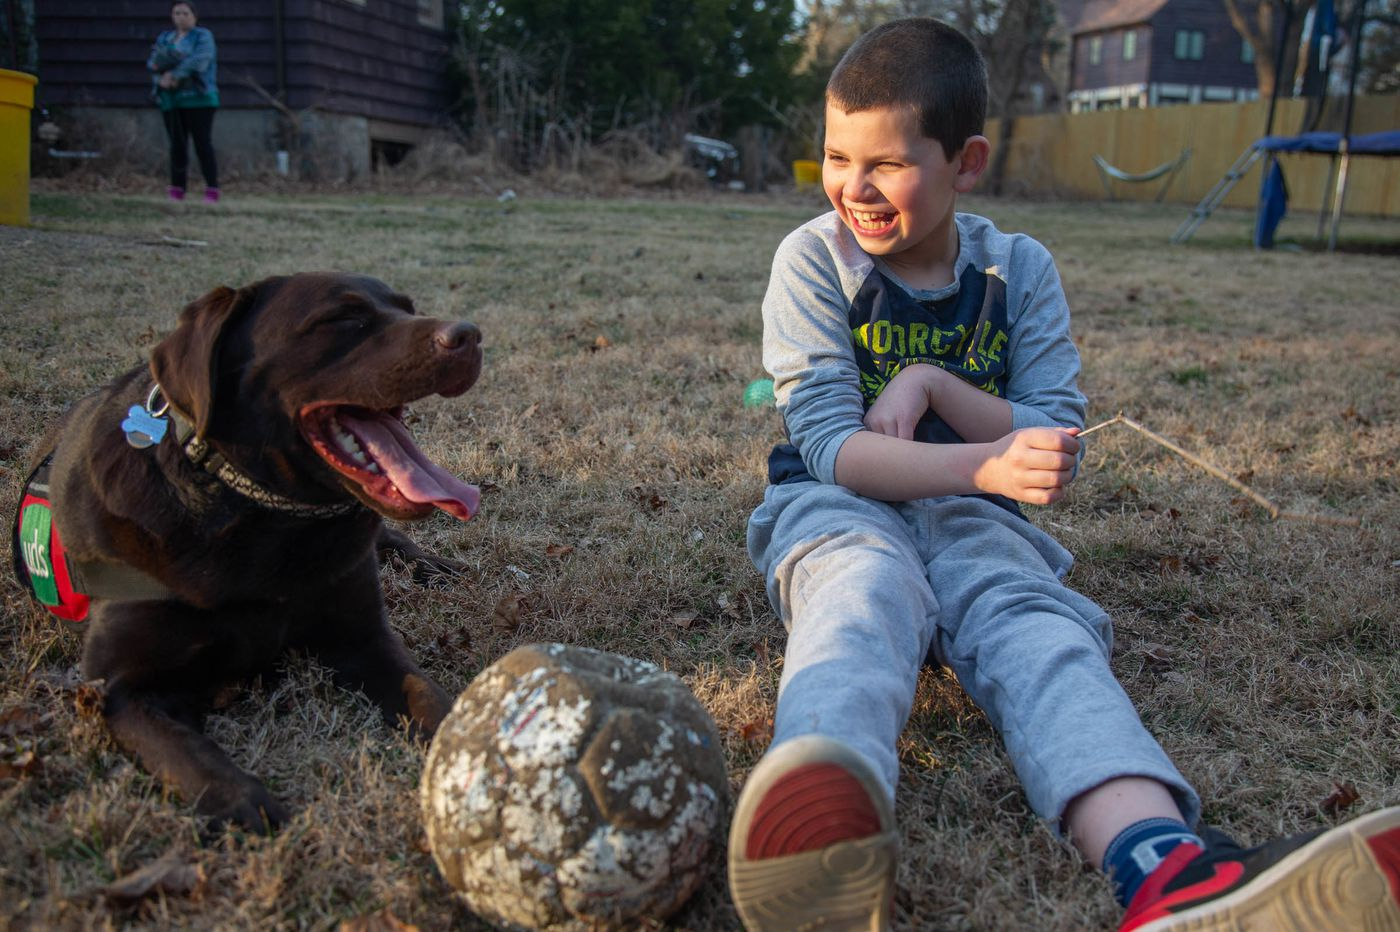 A boy with autism and his dog: How Rader helps Dylan connect with the world